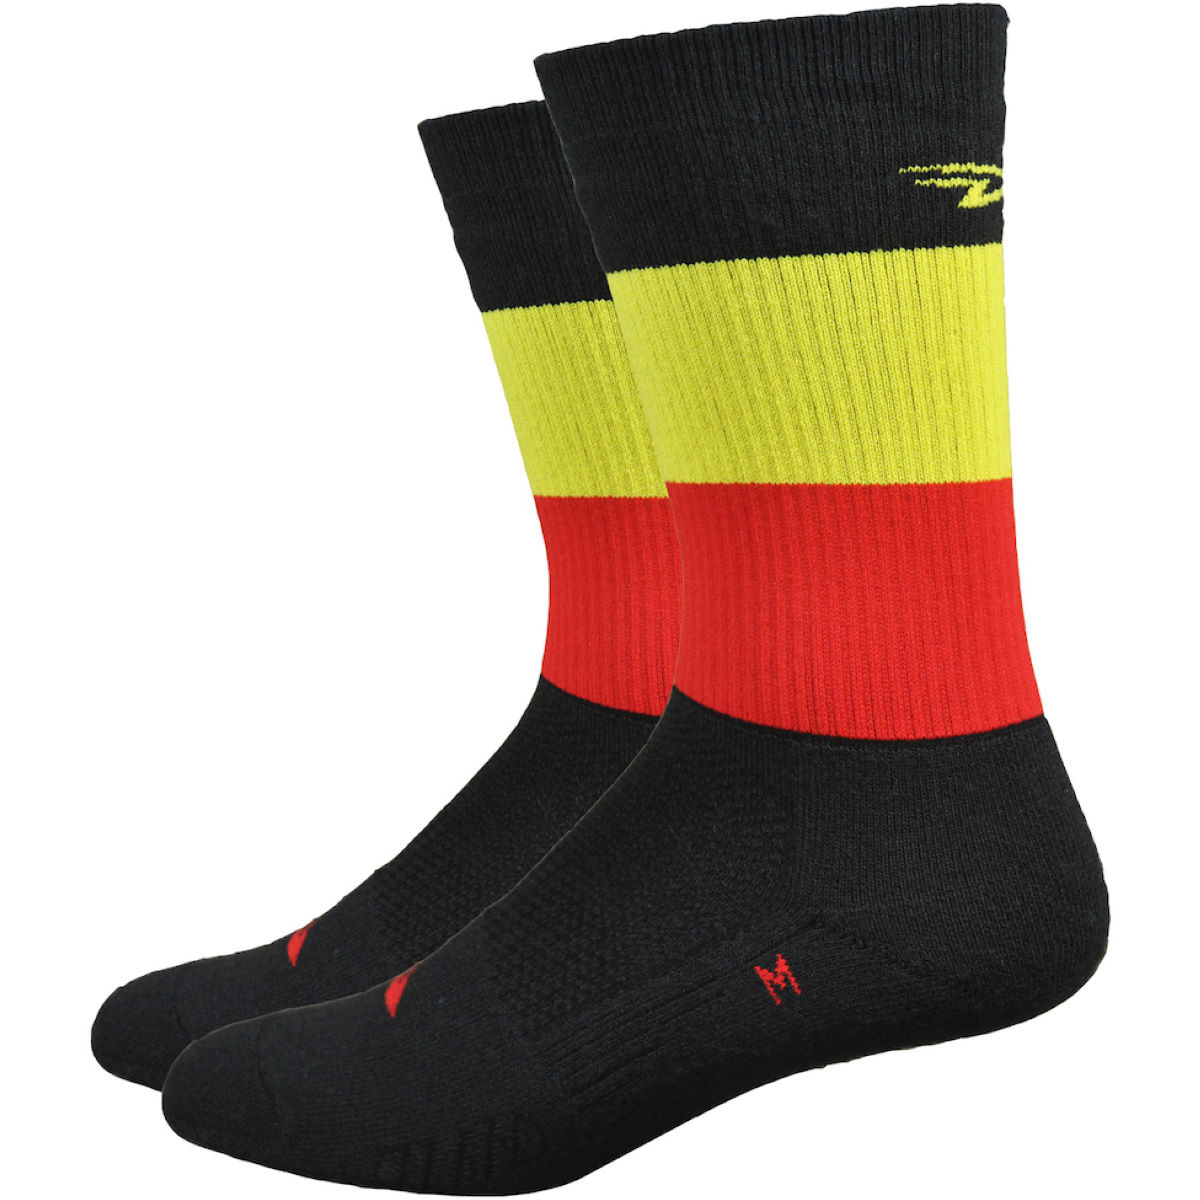 Calcetines DeFeet Thermeator Twister  - Calcetines de ciclismo